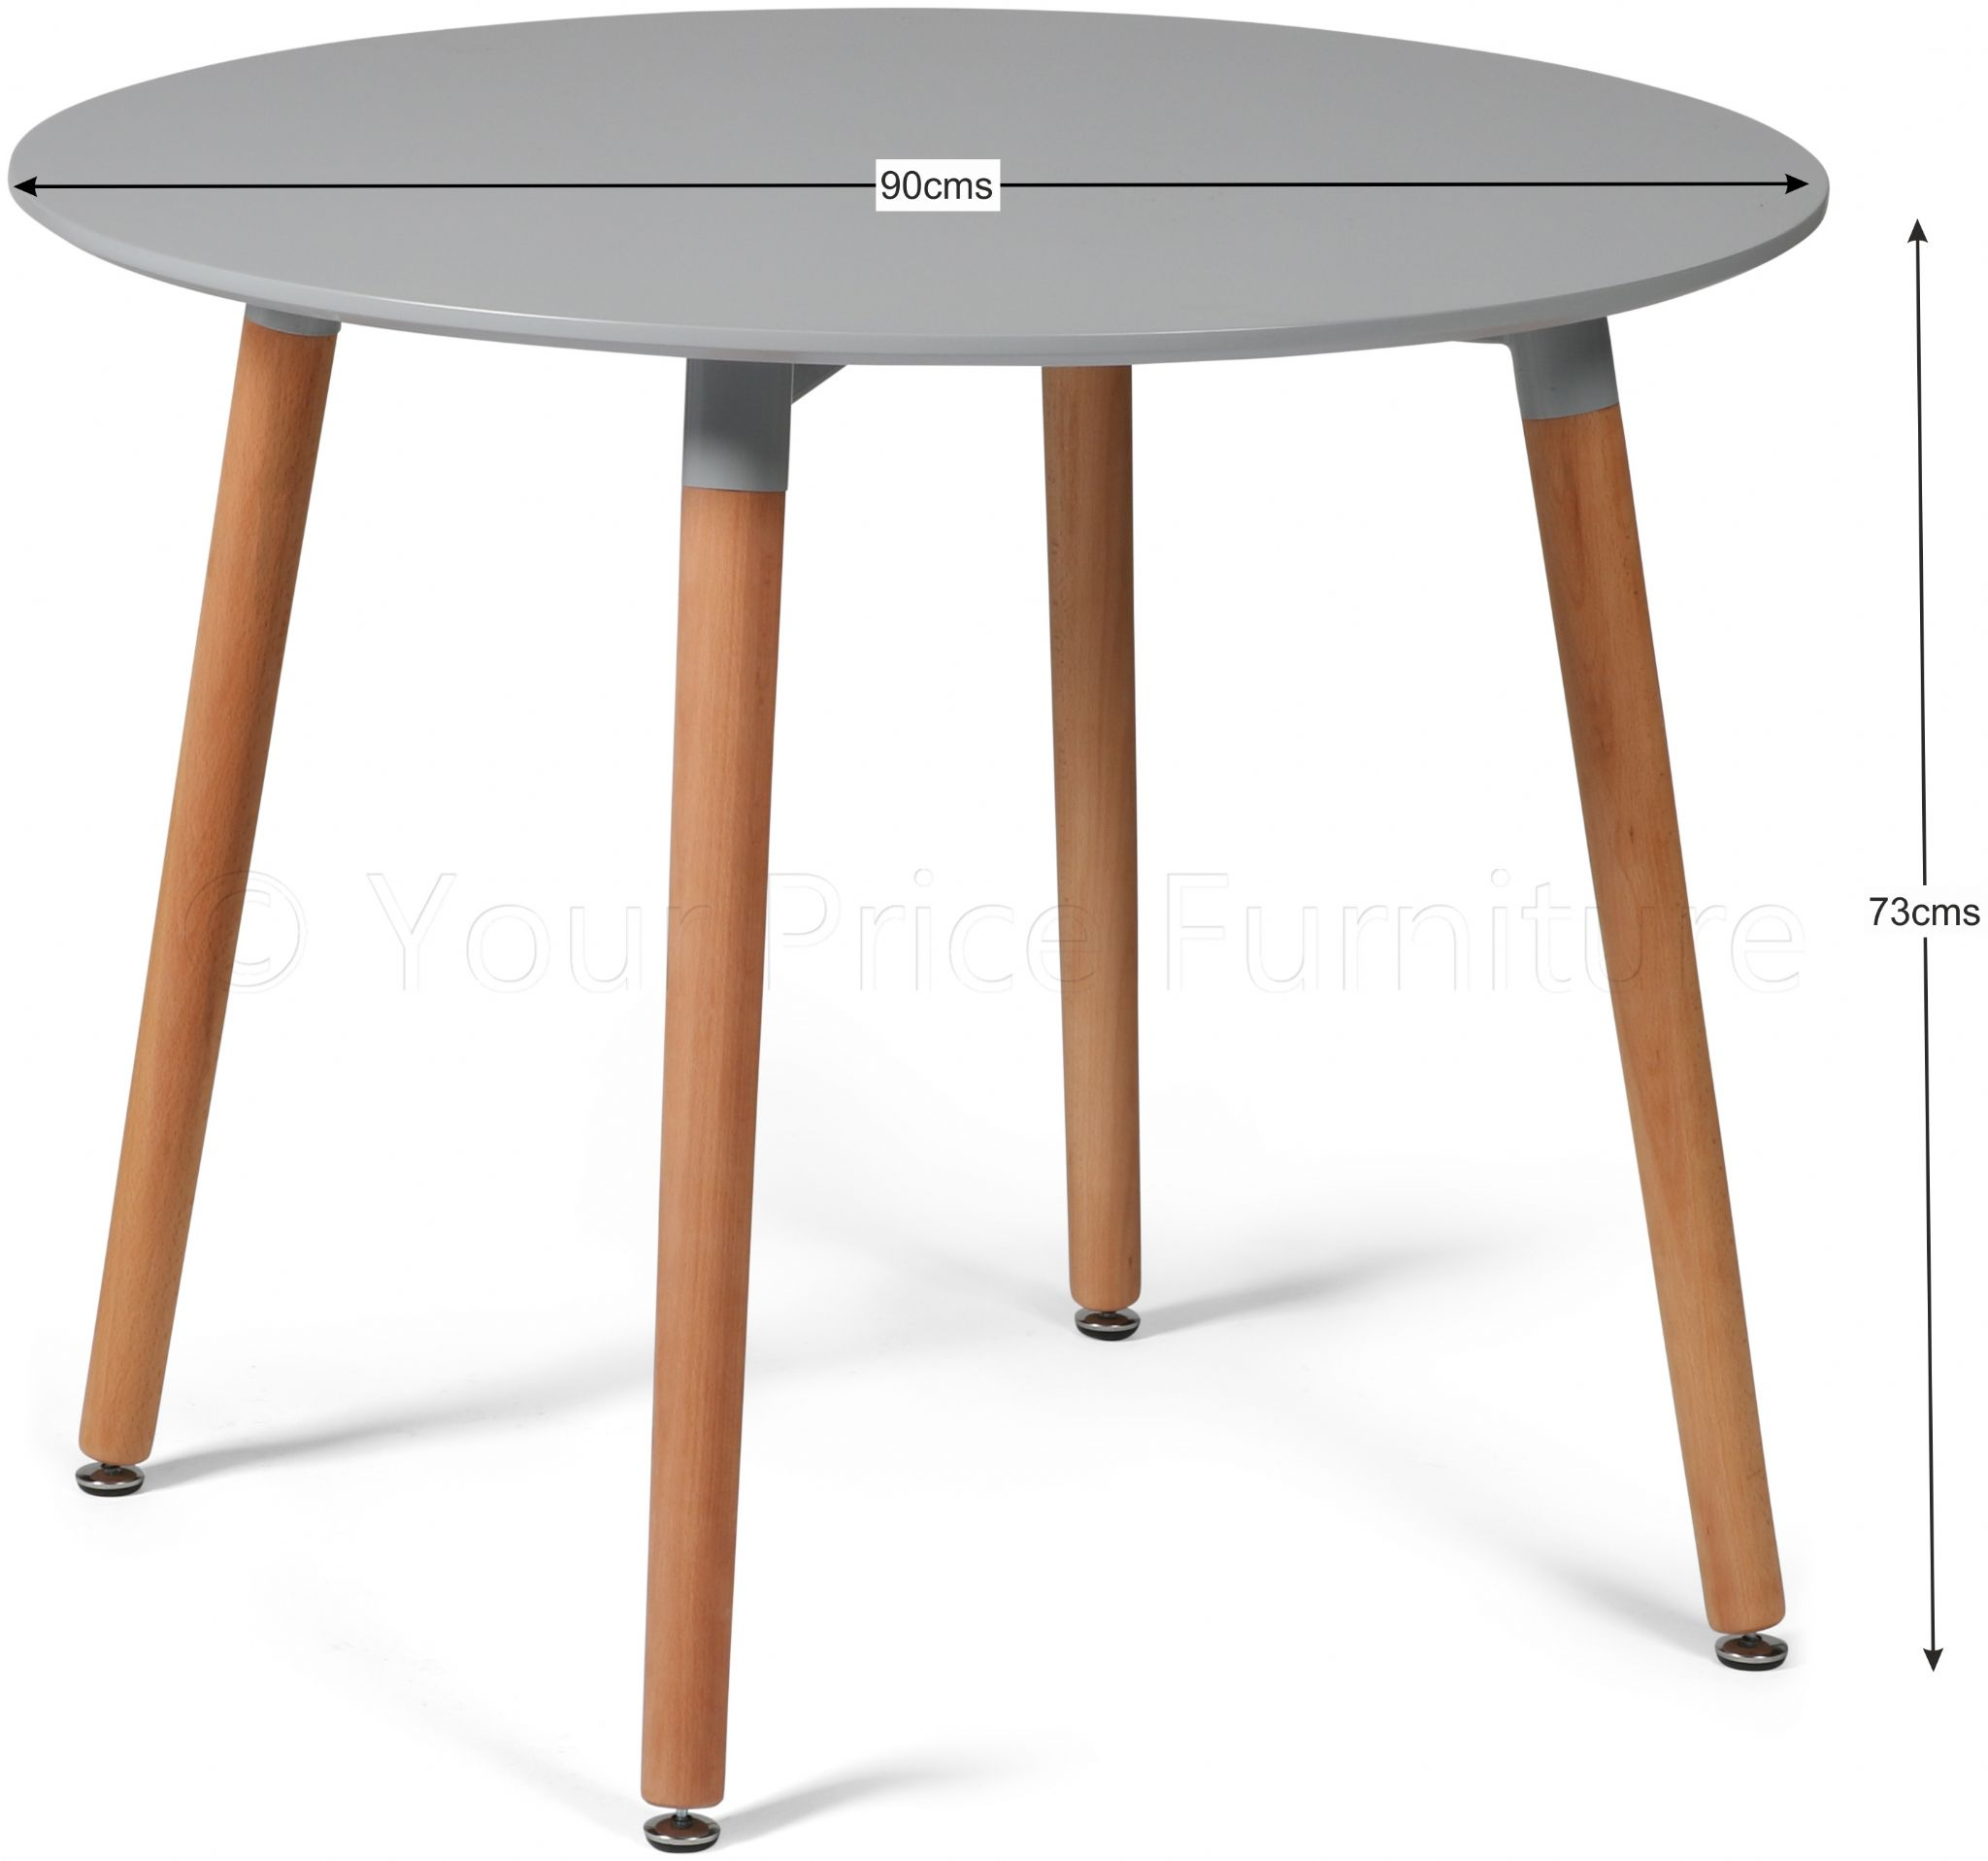 Eiffel Grey Designer Dining Table Round Small Sale Now On